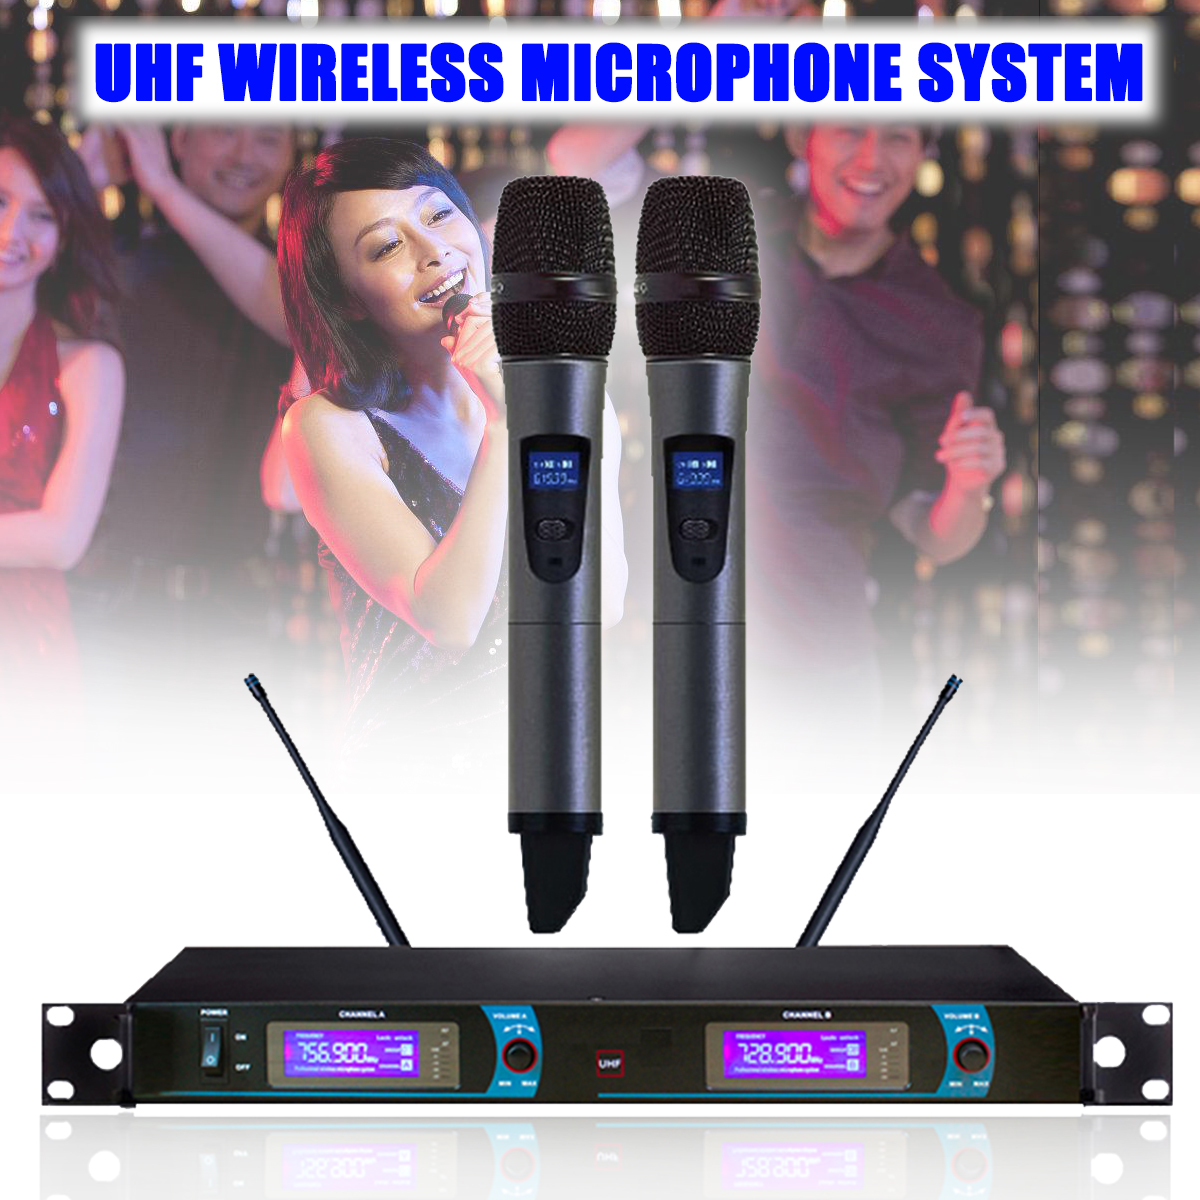 LCD Display UHF Wireless Dual Handheld Microphone Mic System Home KTV Karaoke DJ Wireless Microphone Profesional